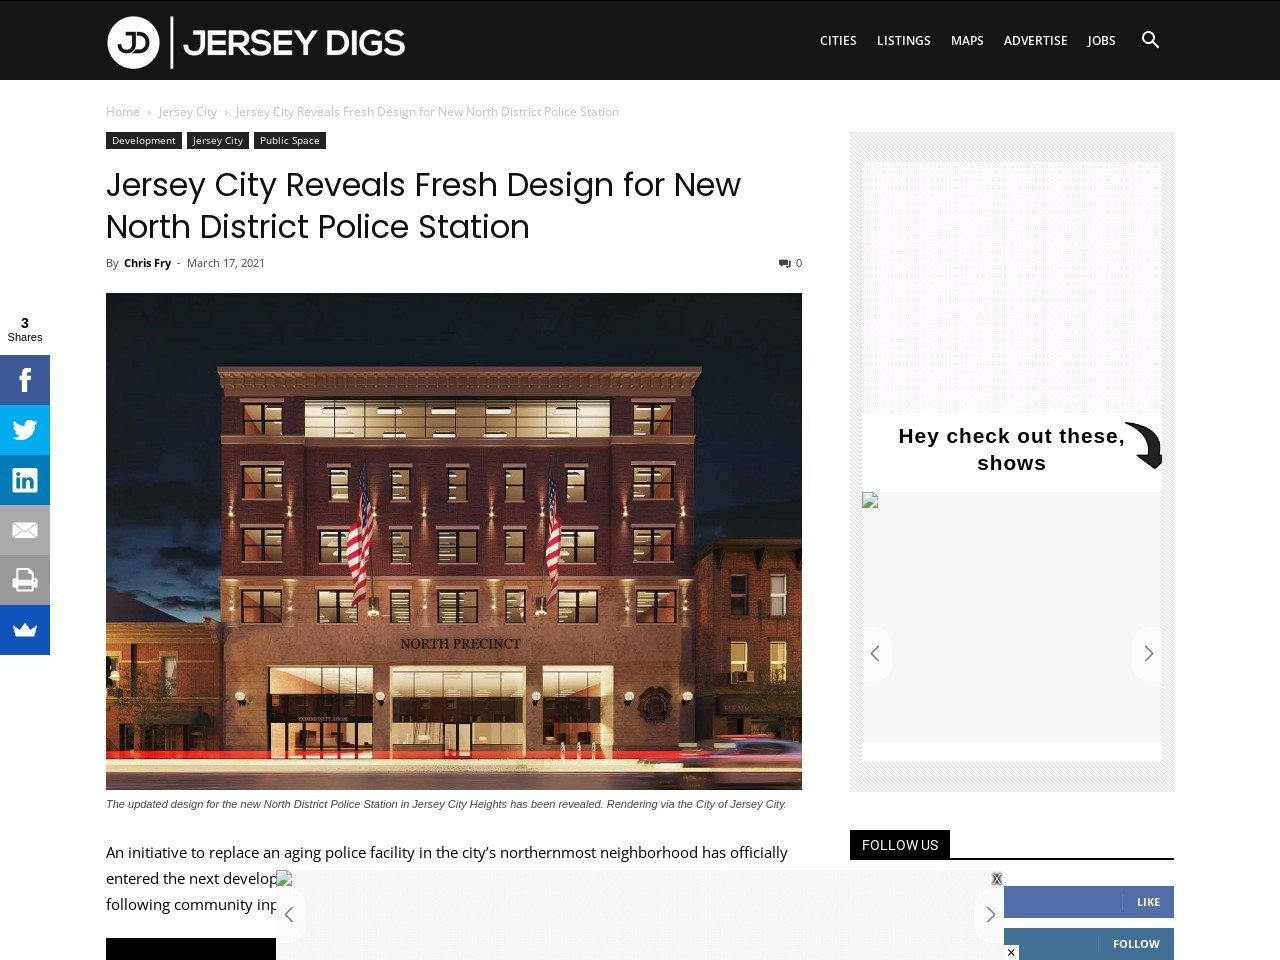 Jersey City Reveals Fresh Design for New North District Police Station